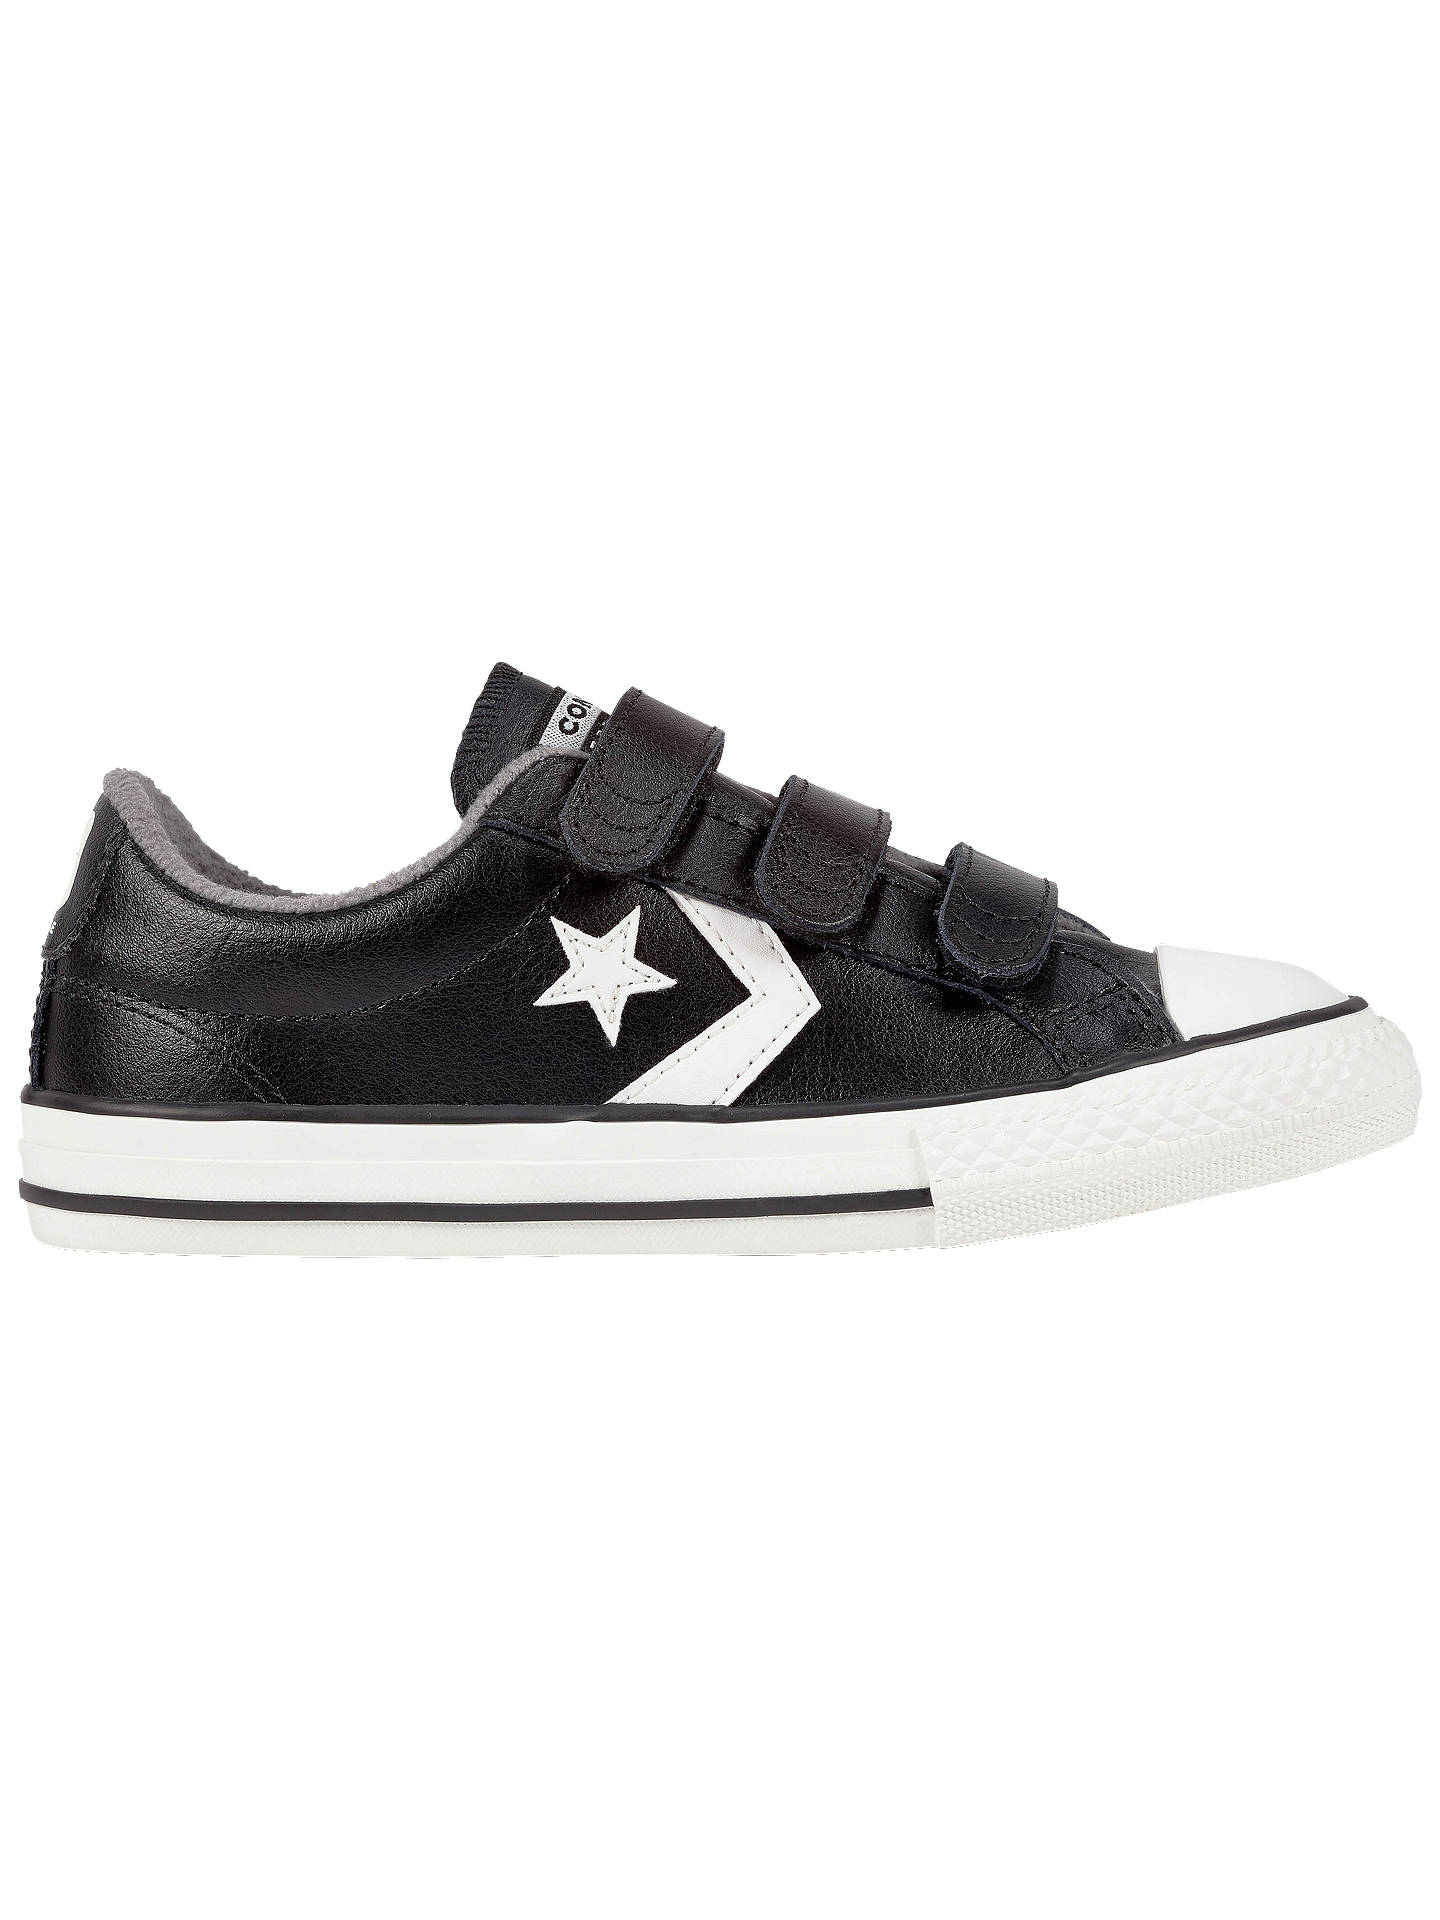 bca99a7bf57c Converse Children s Star Player 3V Trainers at John Lewis   Partners